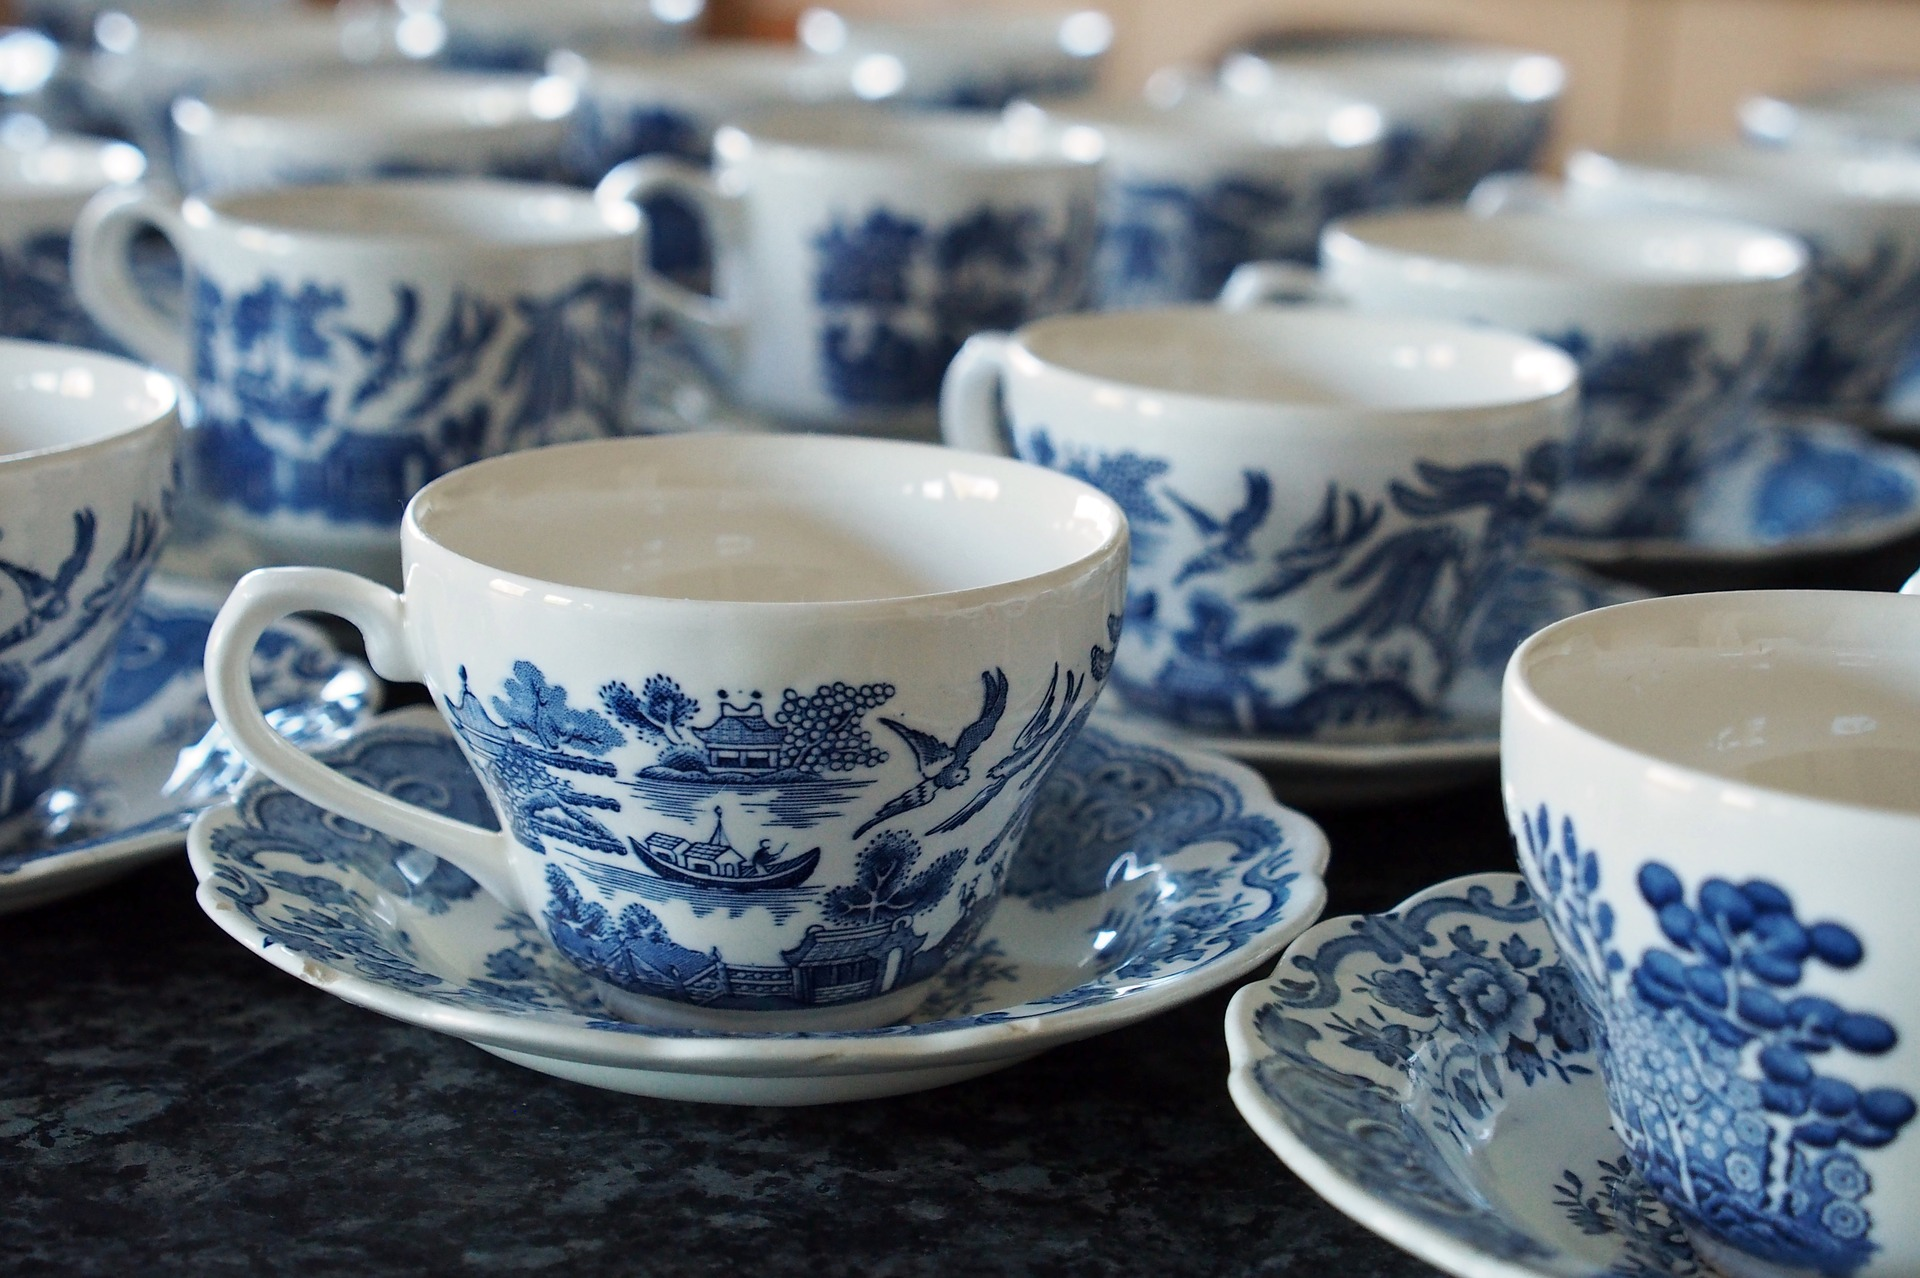 Taking Tea: What I Learned About Irish Culture and Customs